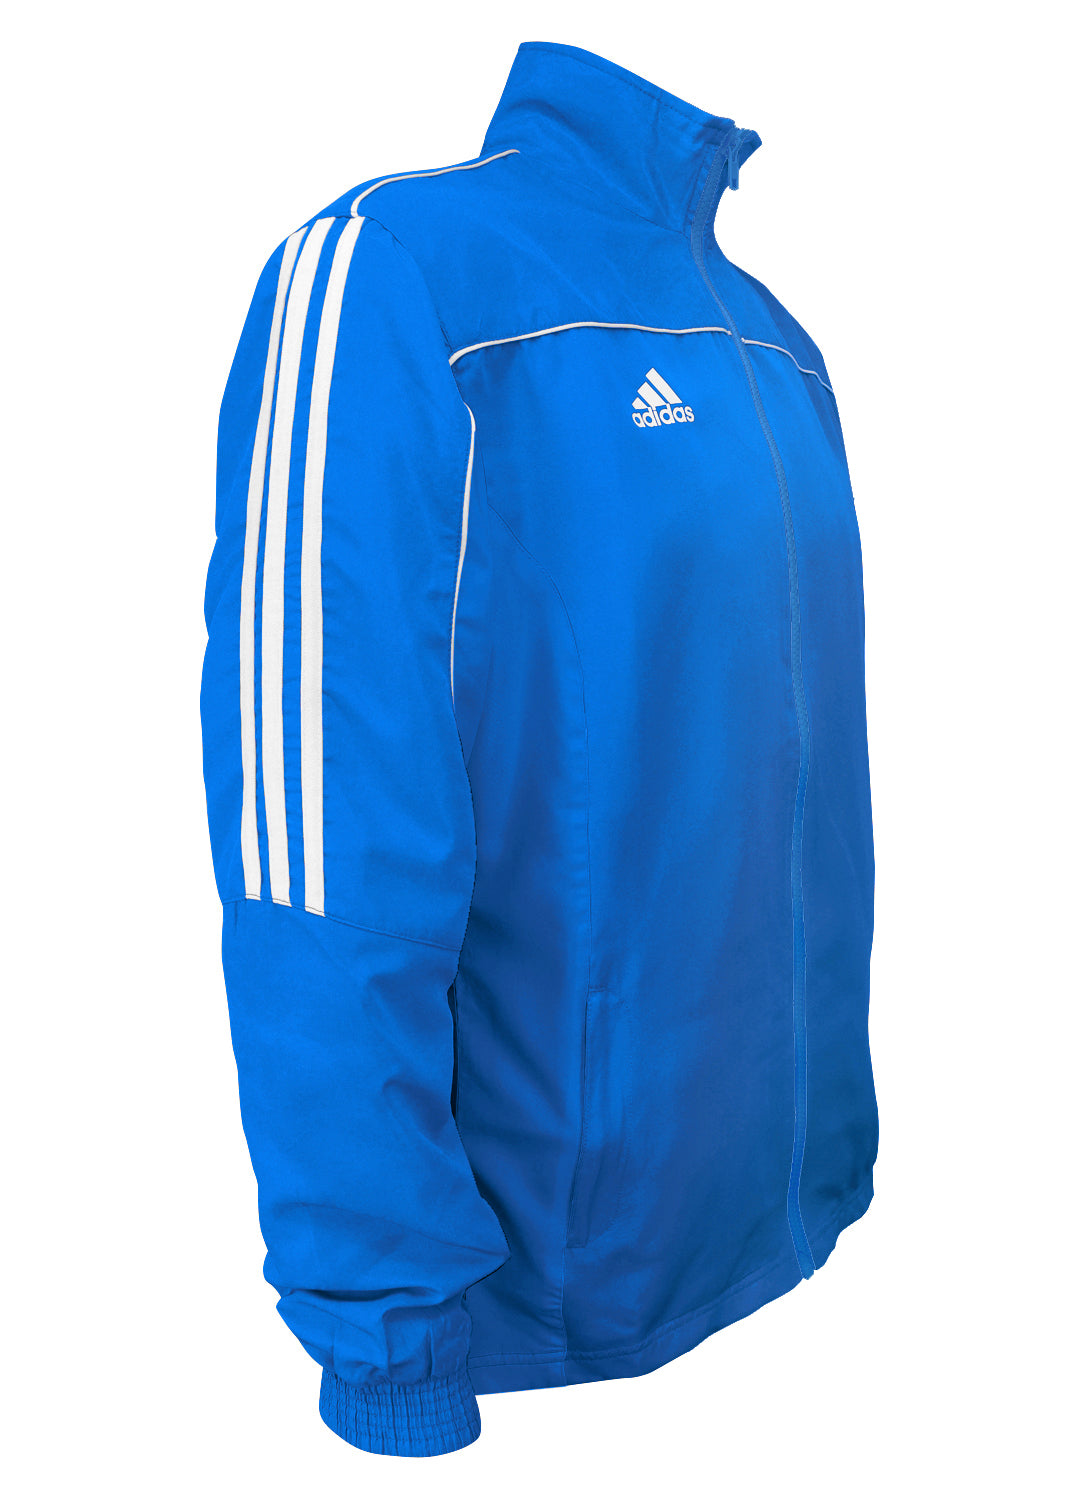 adidas Blue with White Stripes Windbreaker Style Team Jacket Side View